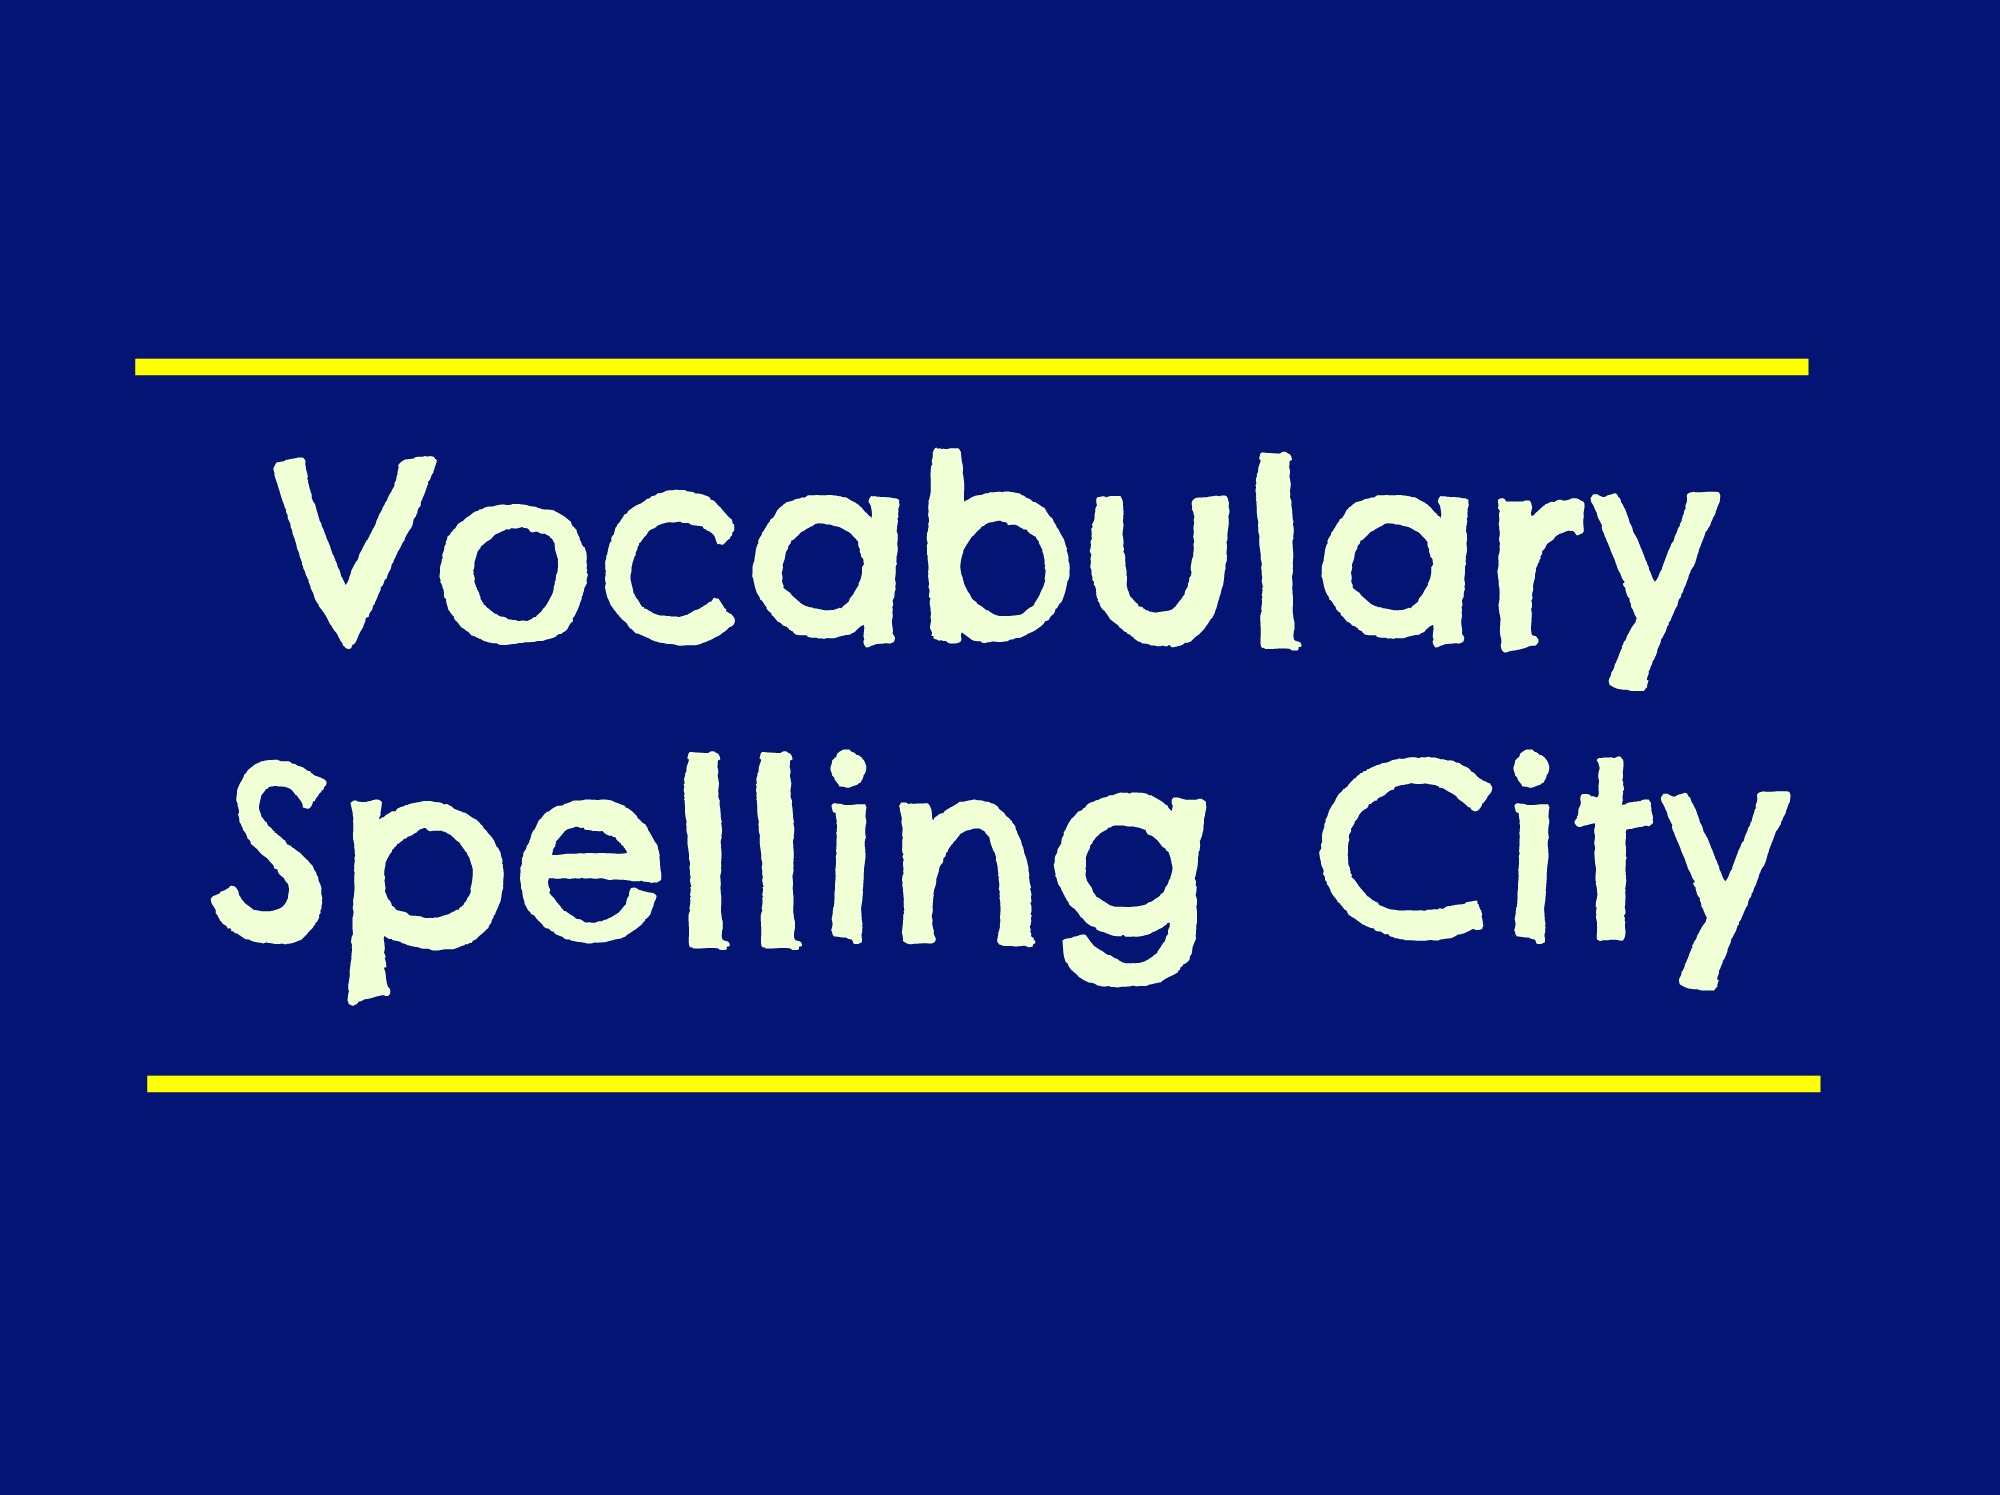 Link to Spelling City Website